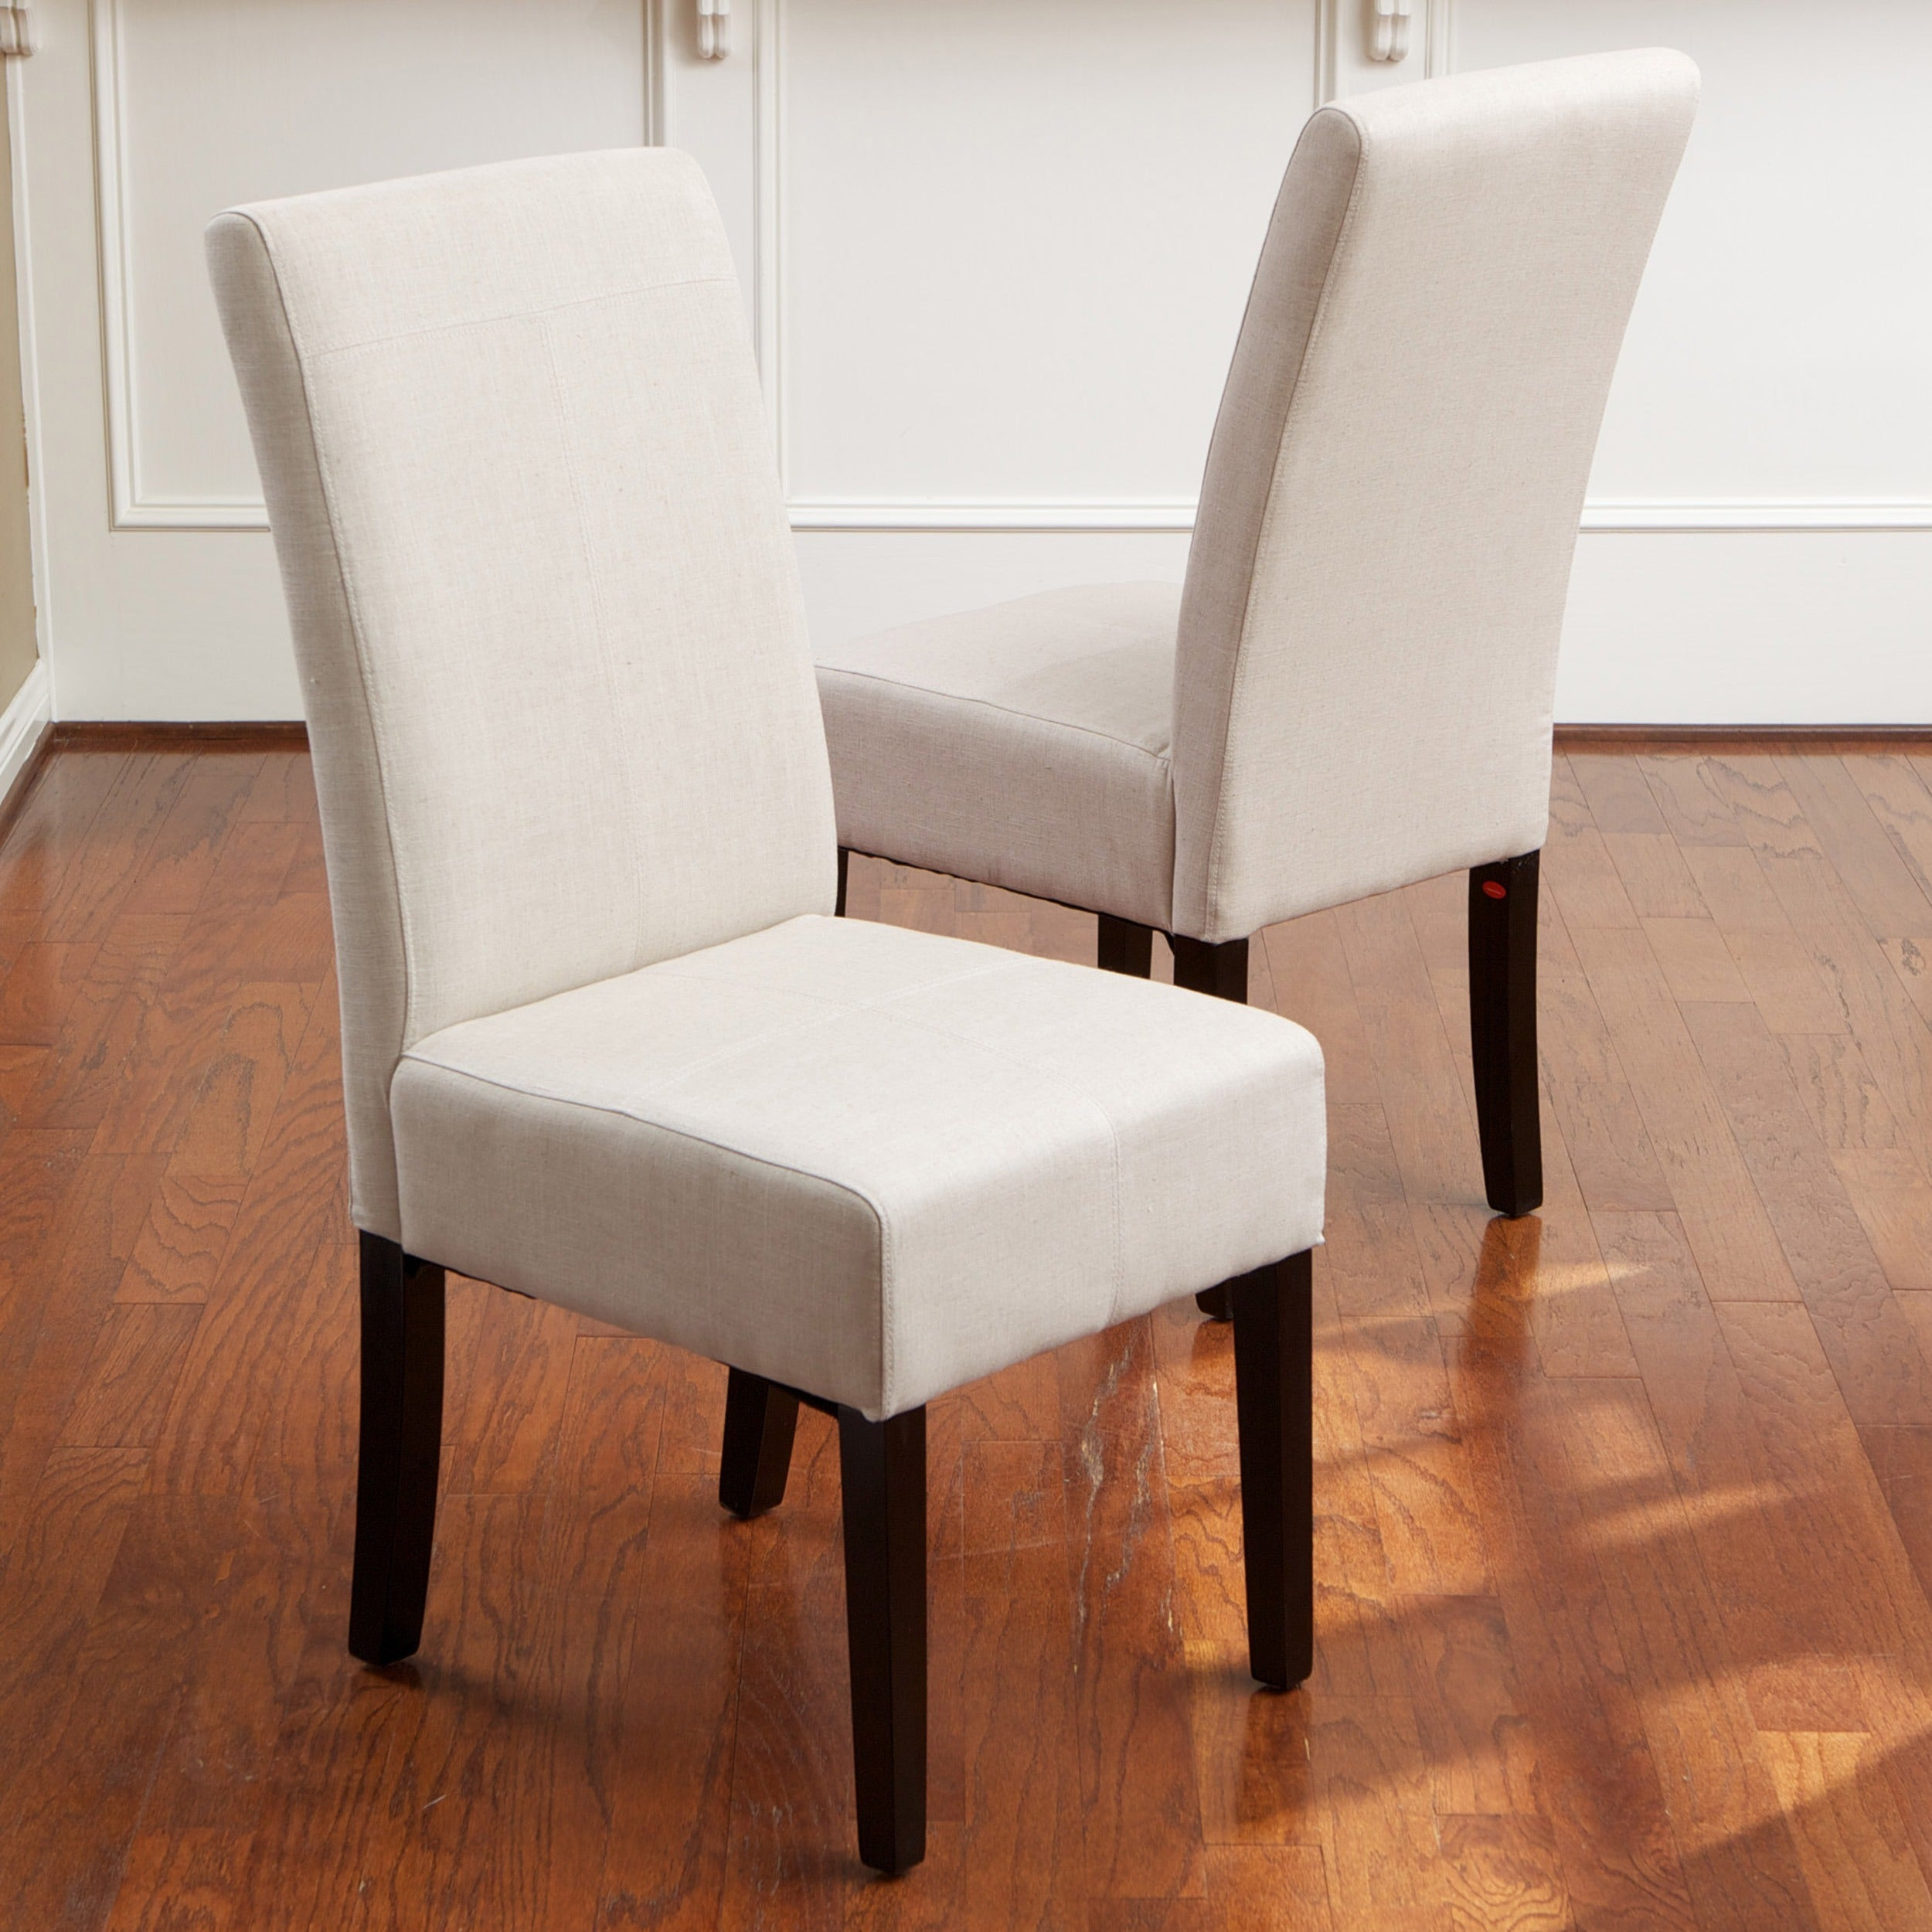 linen dining chairs rustic shop christopher knight home tstitch natural linen dining chairs set of 2 on sale free shipping today overstockcom 6185344